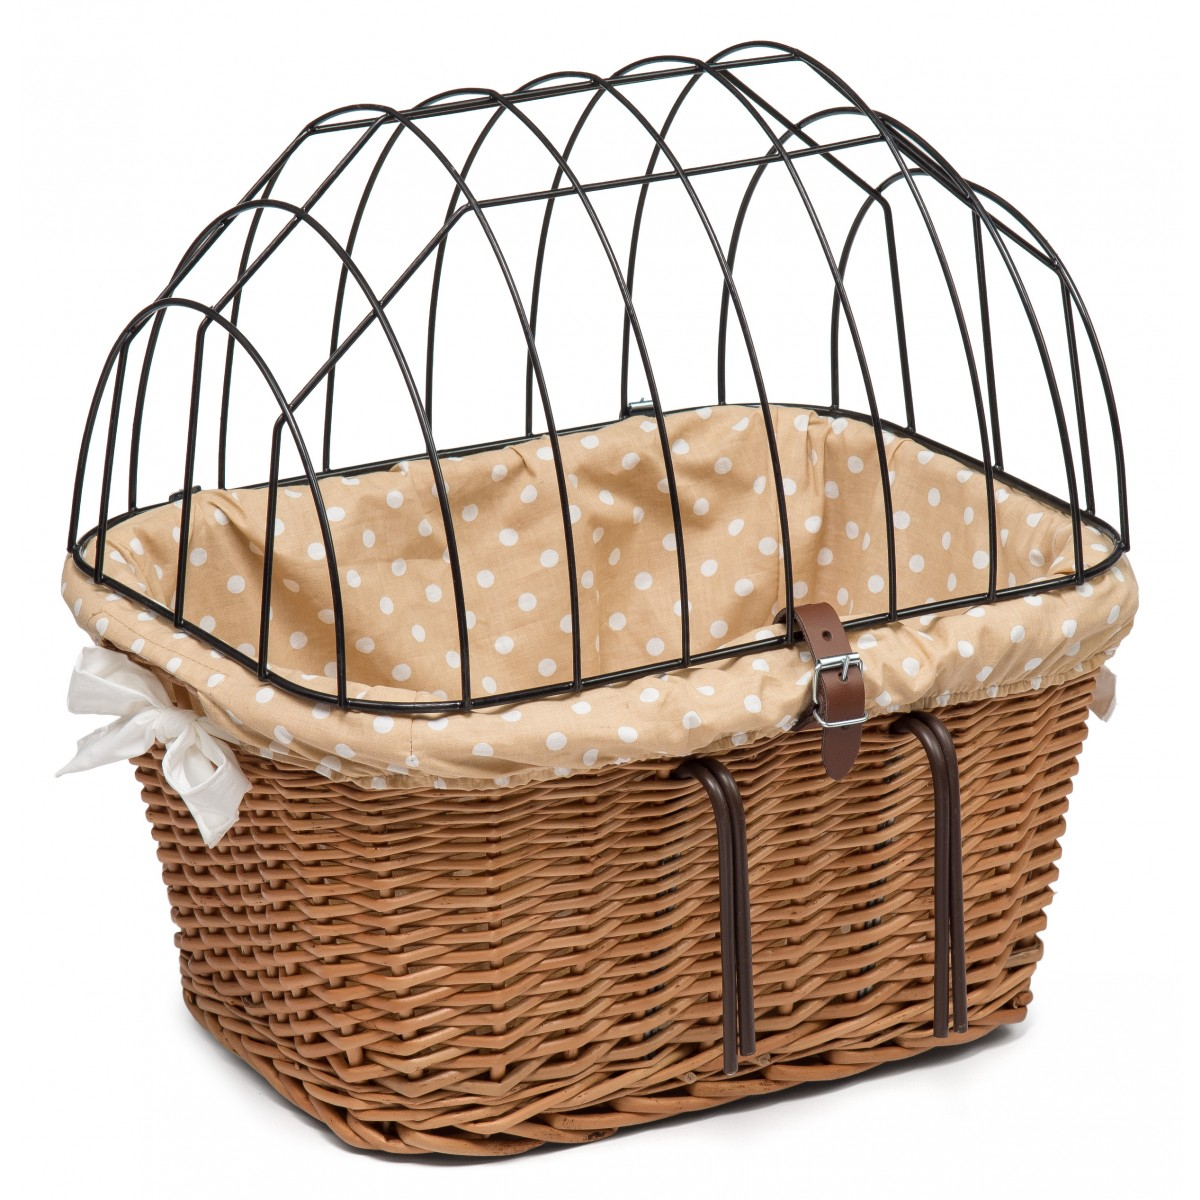 1200x1200 Wicker Bicycle Pet Carrier Basket With Liner